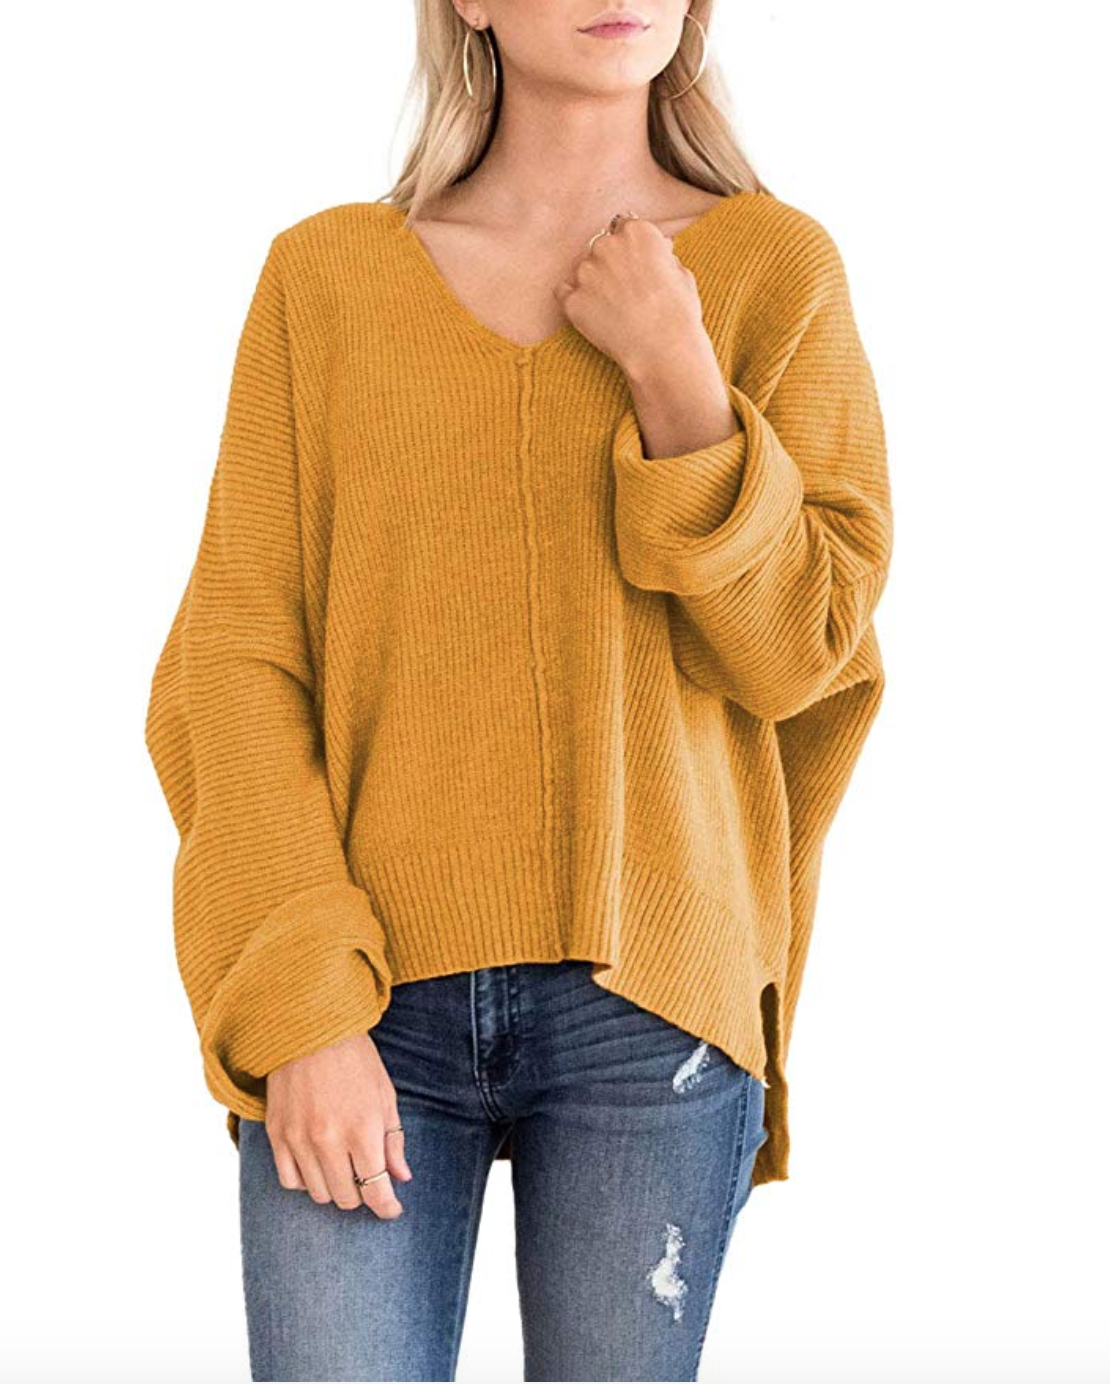 MIROL Women's Oversized Batwing Sleeve V Neck Solid Color Side Split Knit Chic Pullover Sweaters